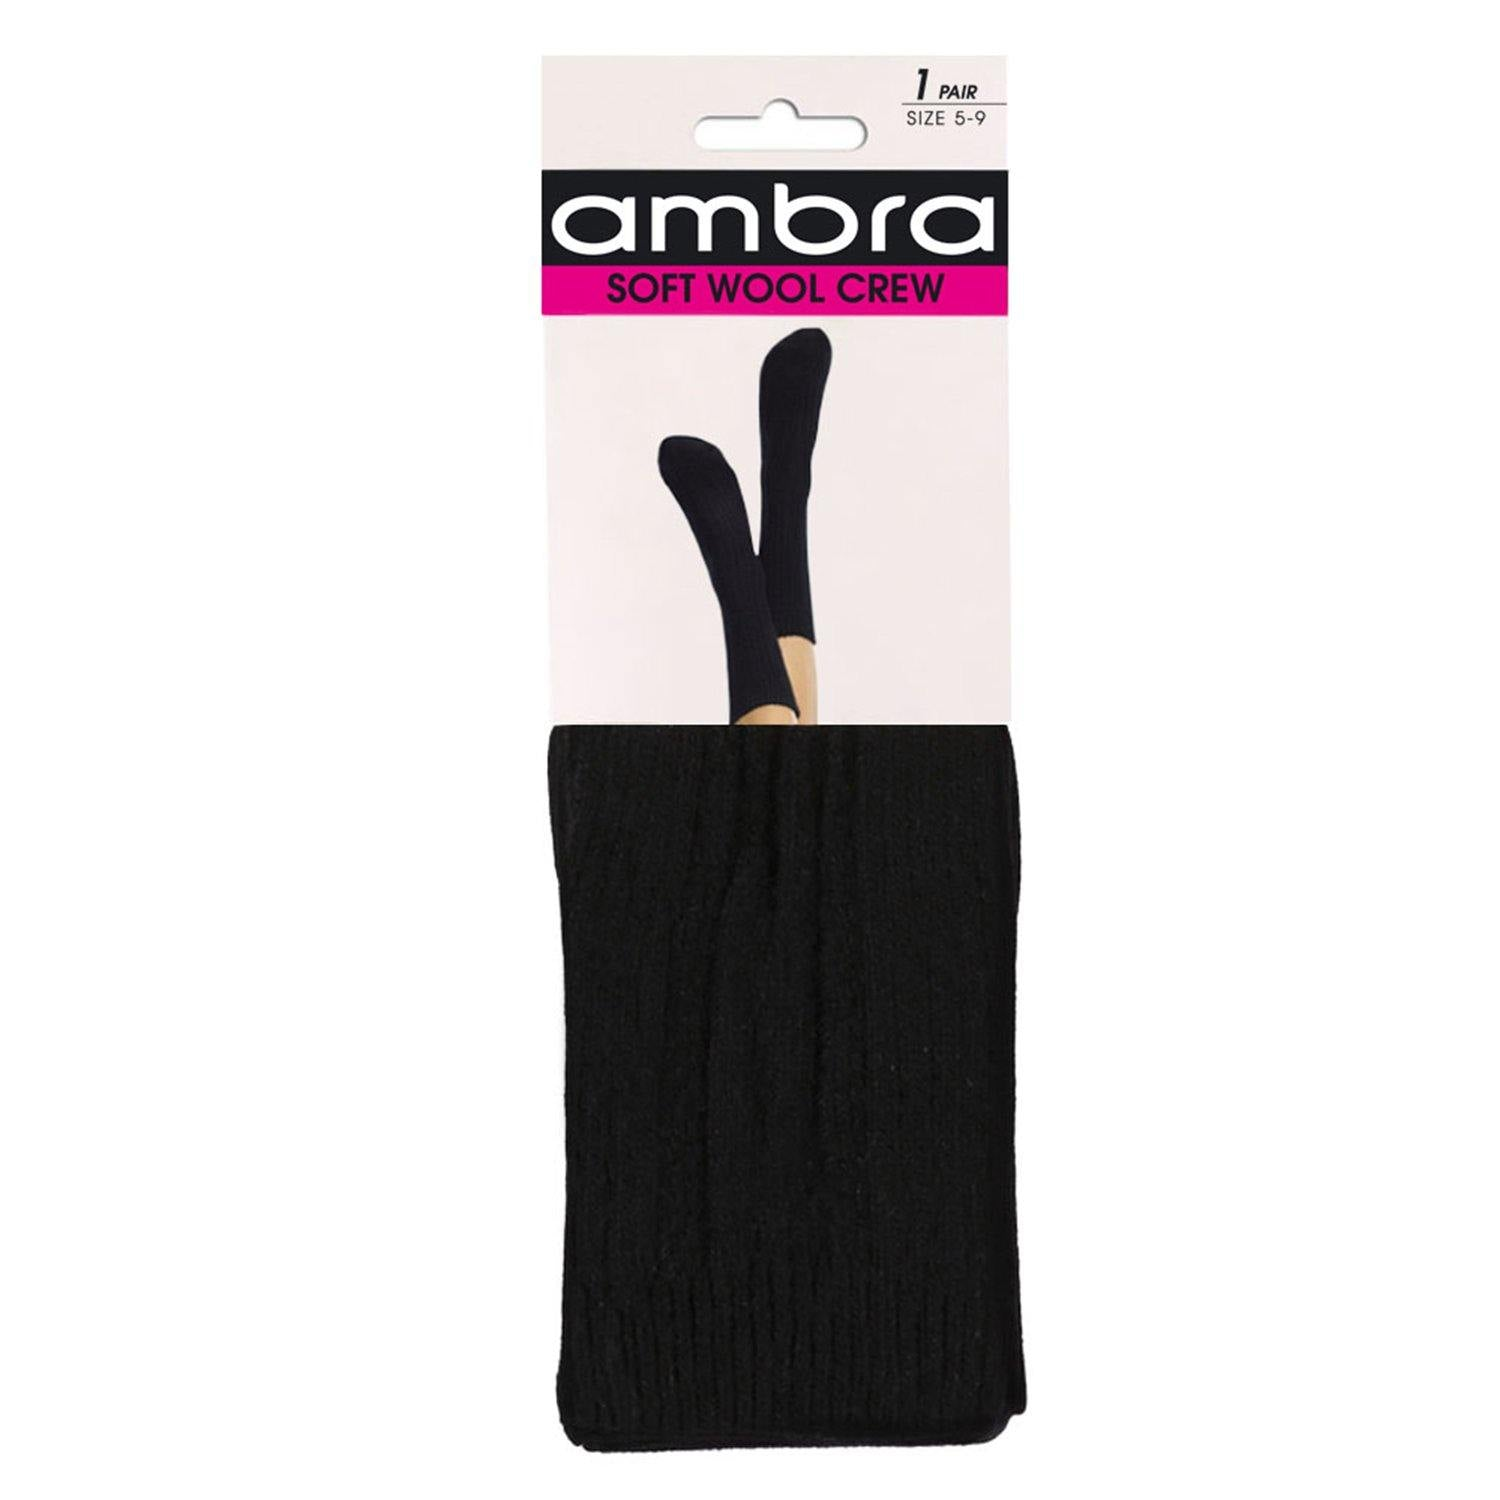 Ambra Soft Wool Crew Women's Socks